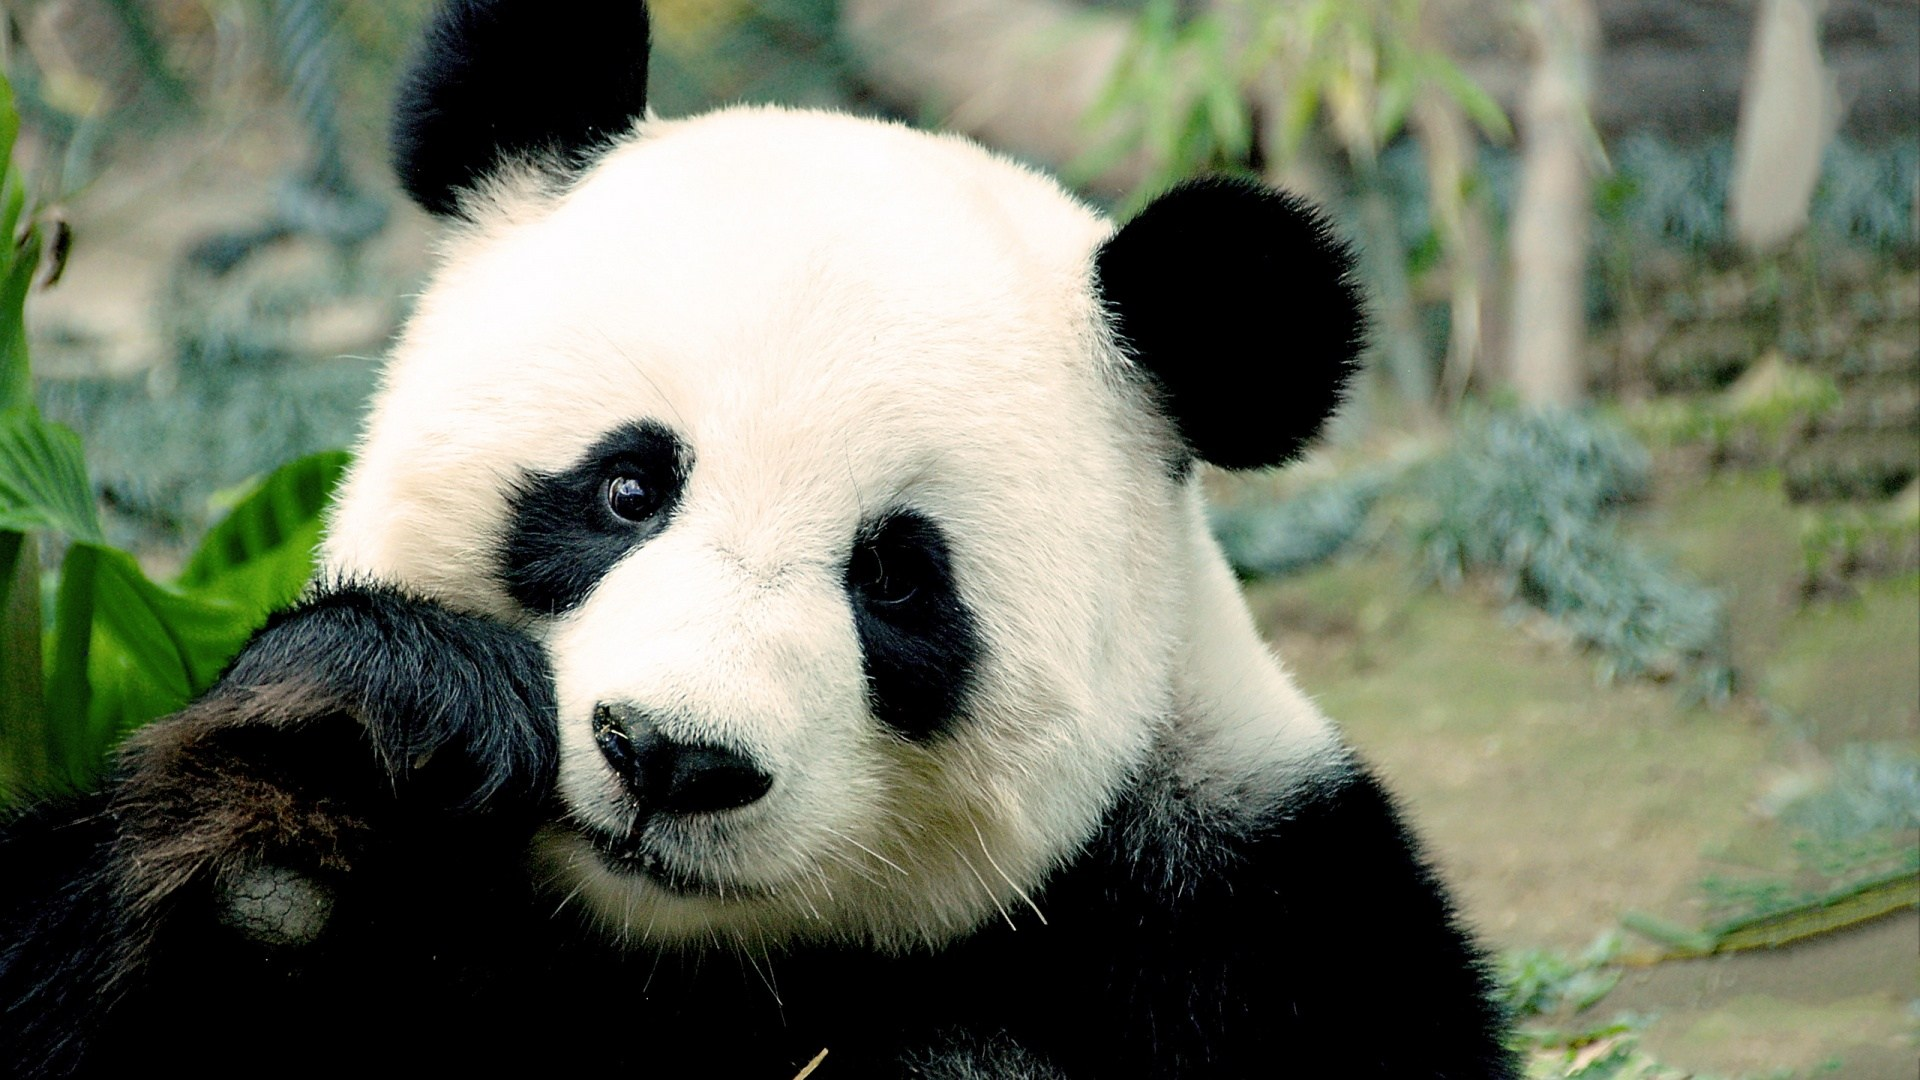 Cute Panda Wallpaper Hd